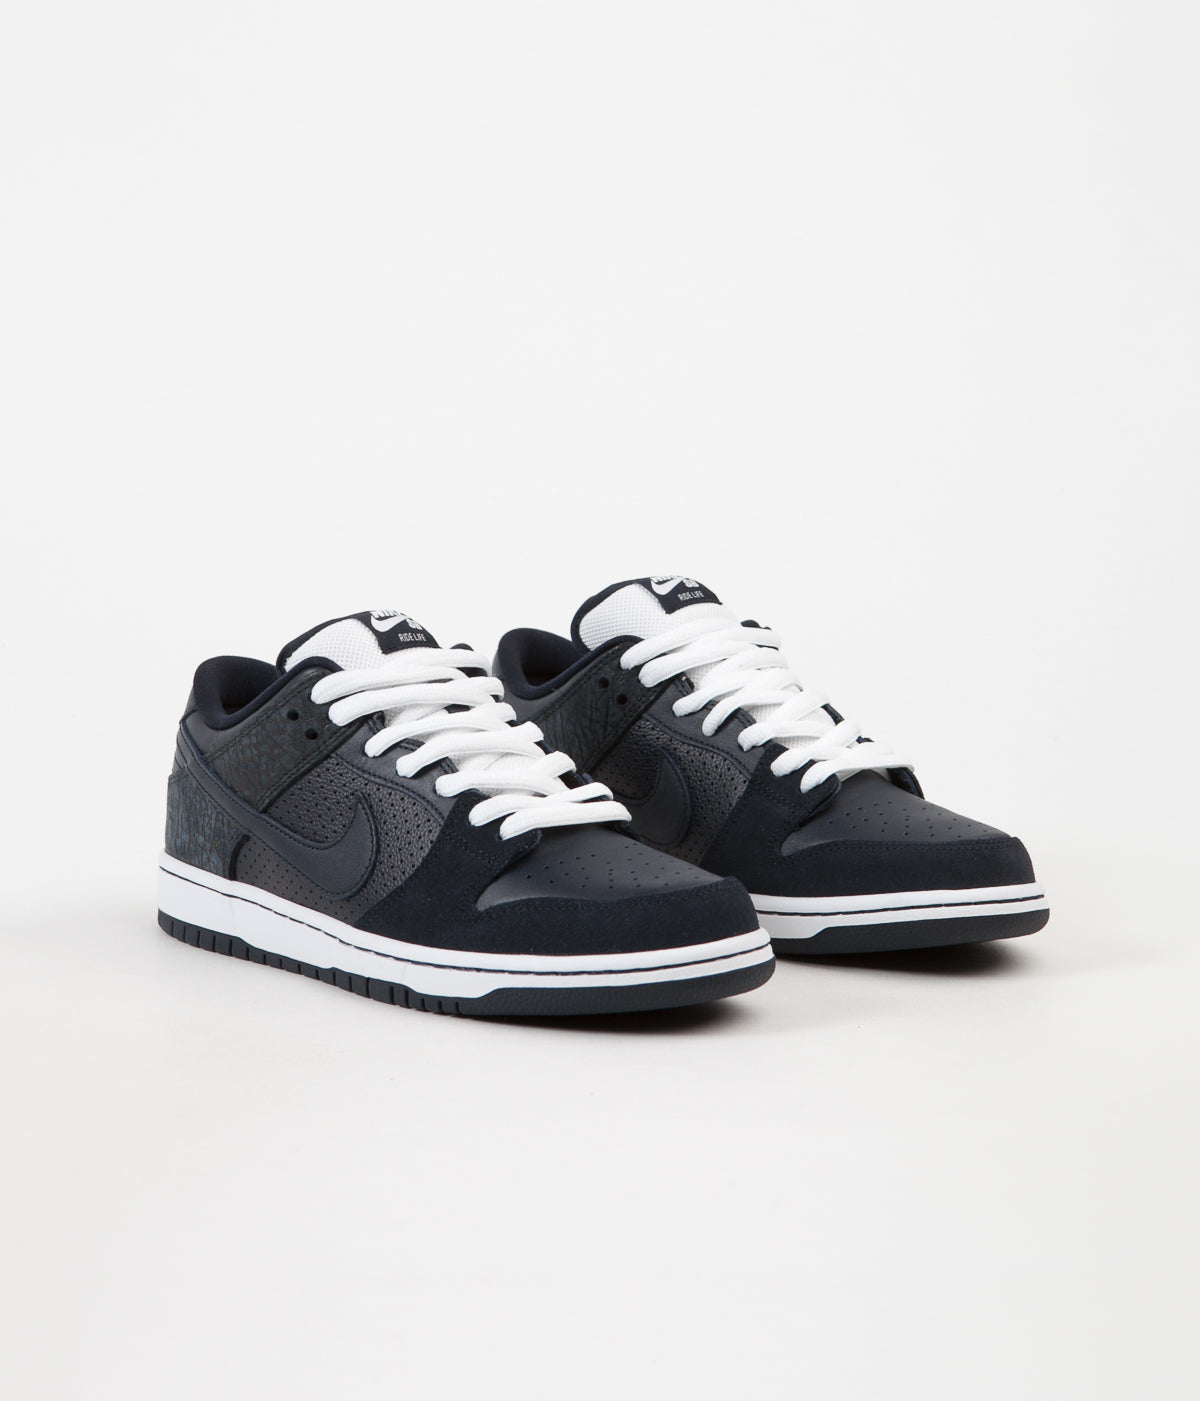 Nike SB Dunk Low TRD Murasaki Shoes - Dark Obsidian / Dark Obsidian - White